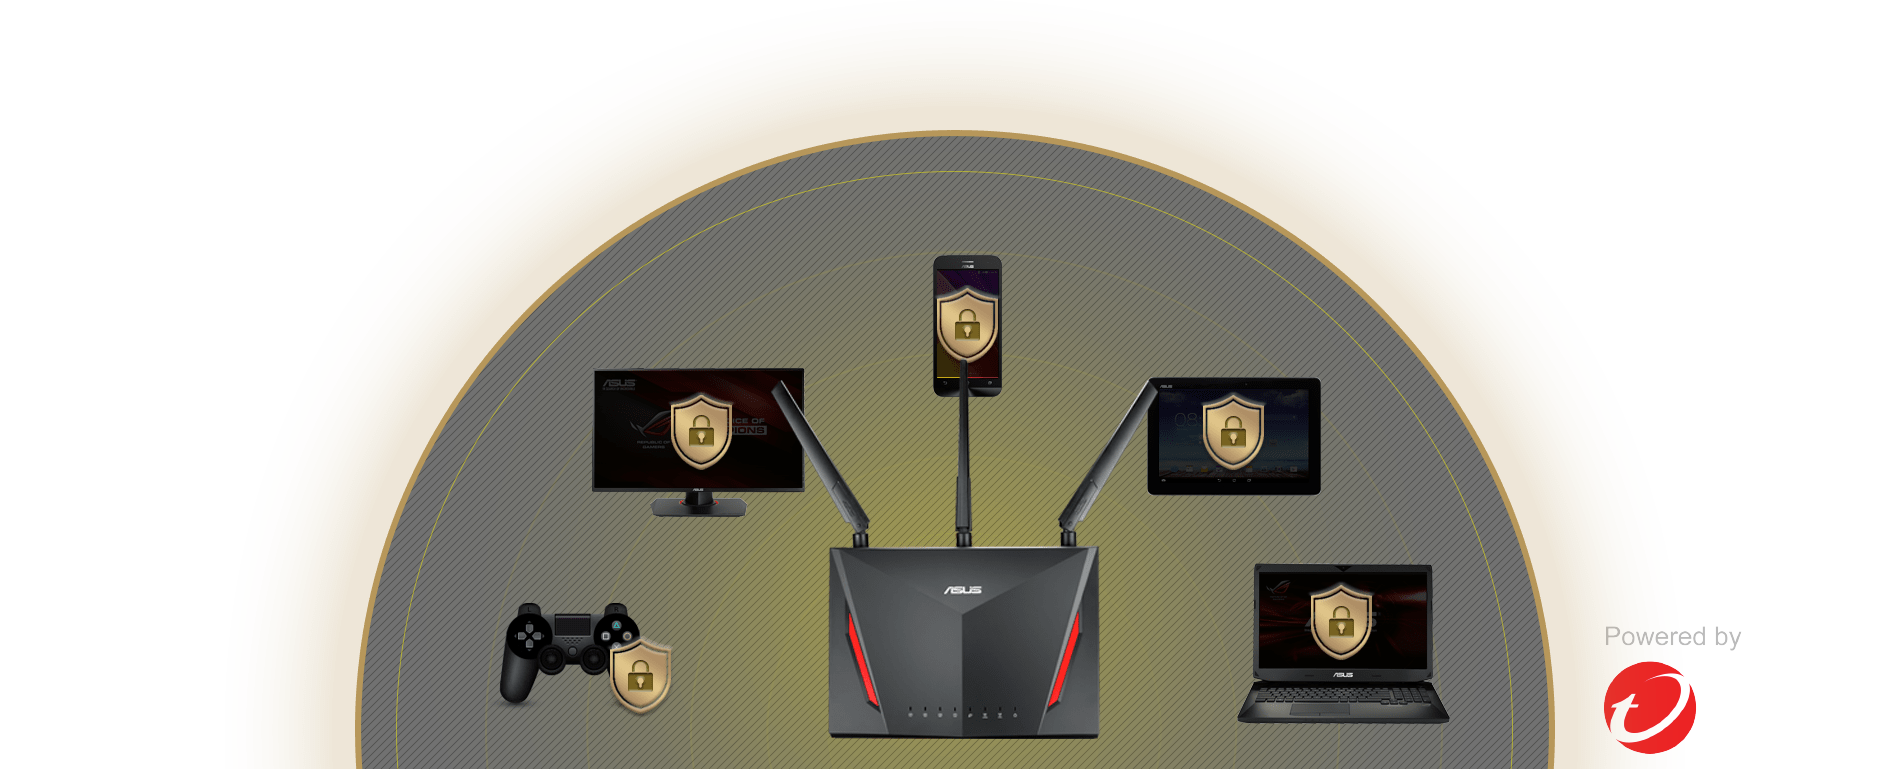 ASUS RT-AC2900 router features AiProtection providing internet security for all connected devices